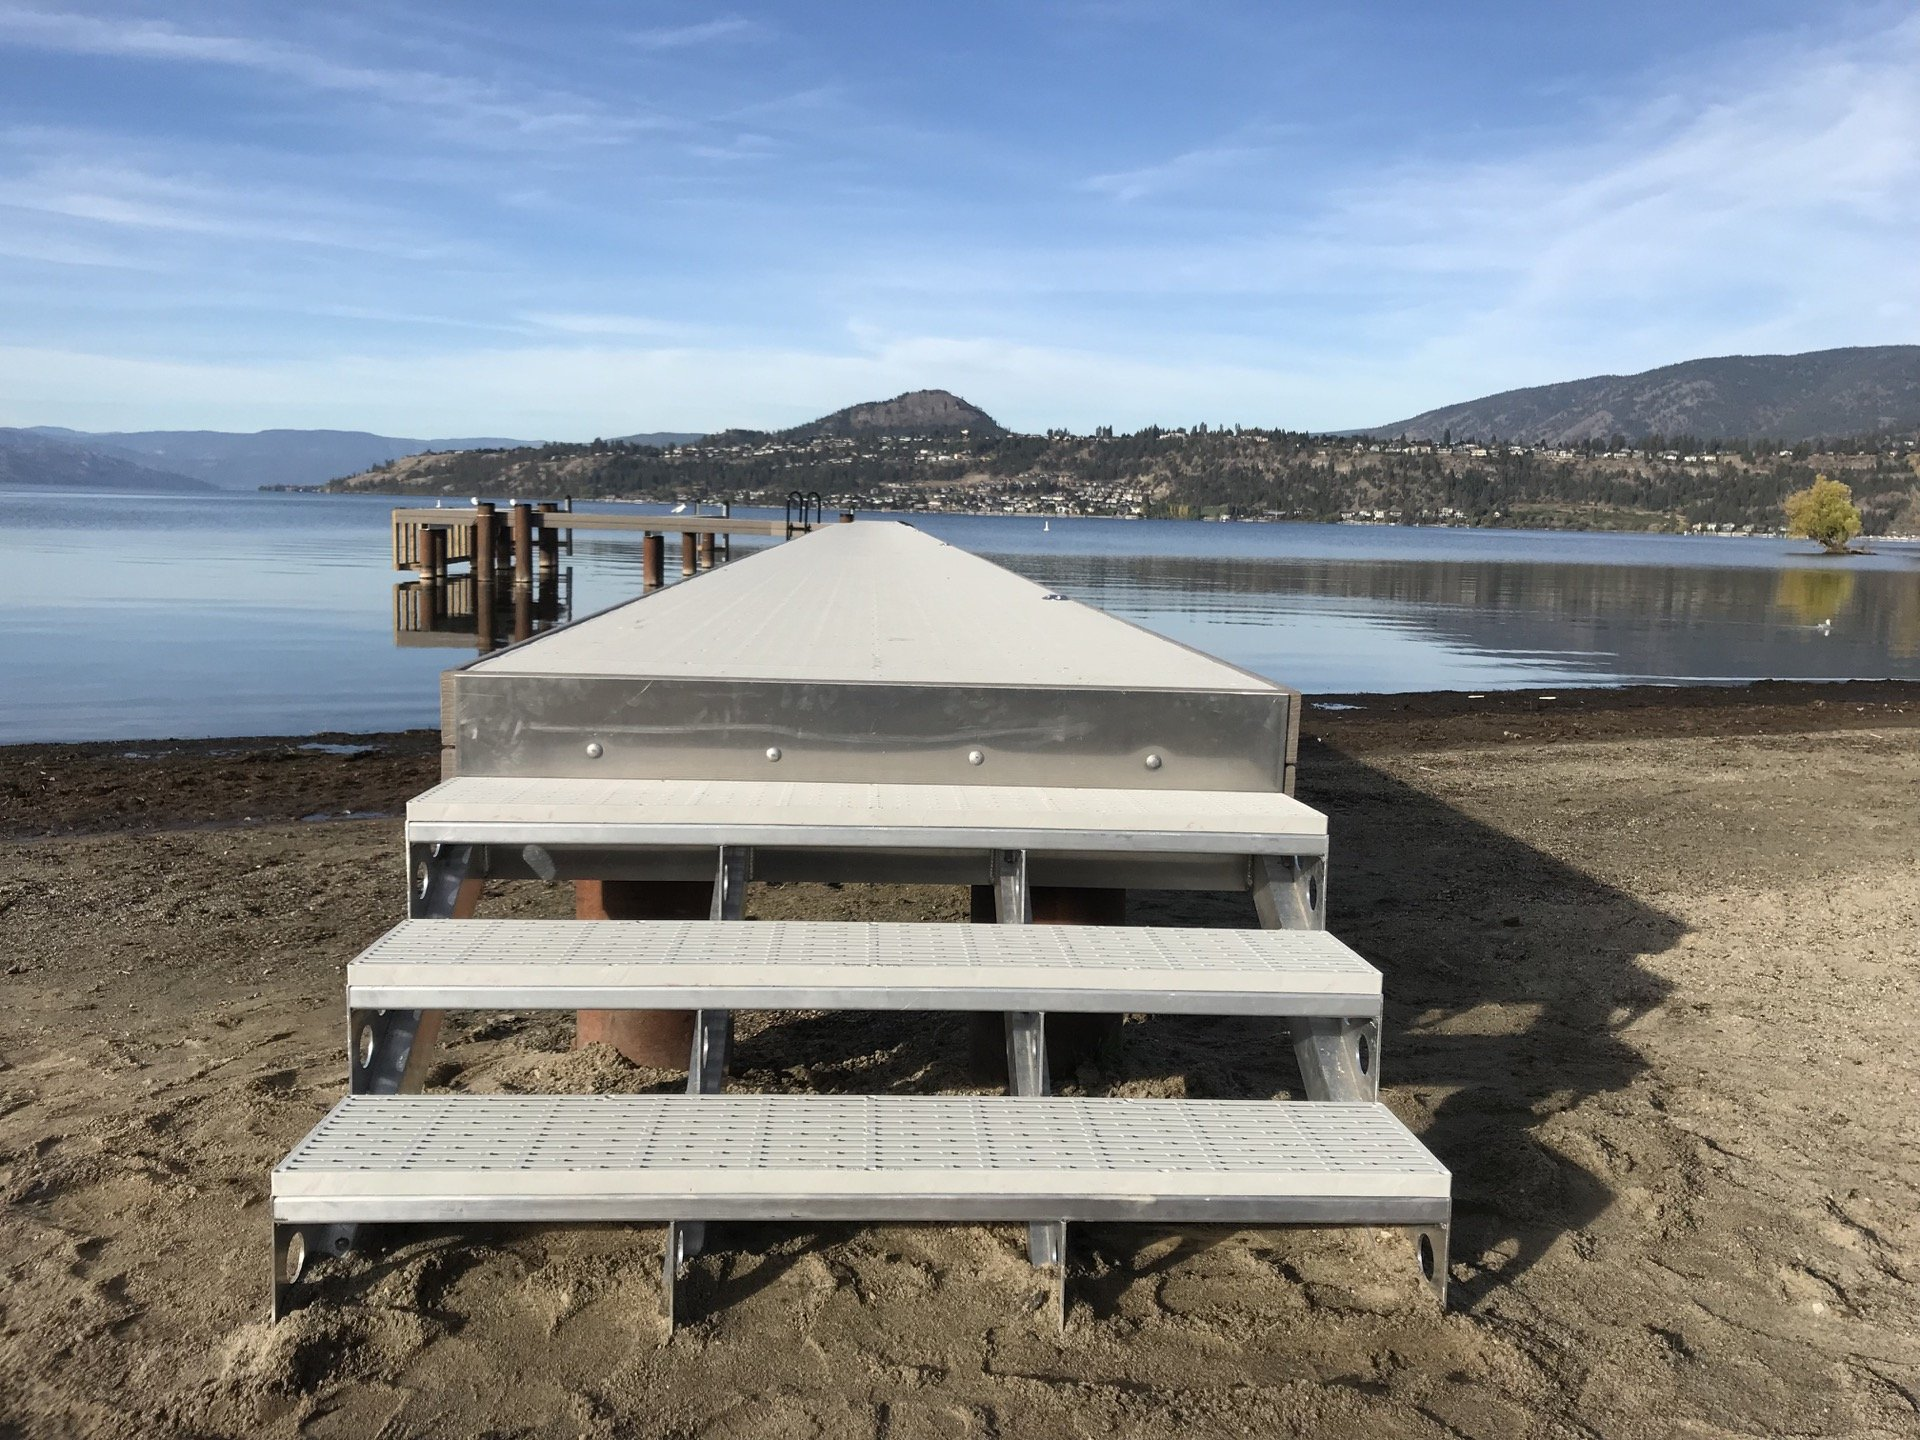 aluminum dock stairs leading up to aluminum floating dock